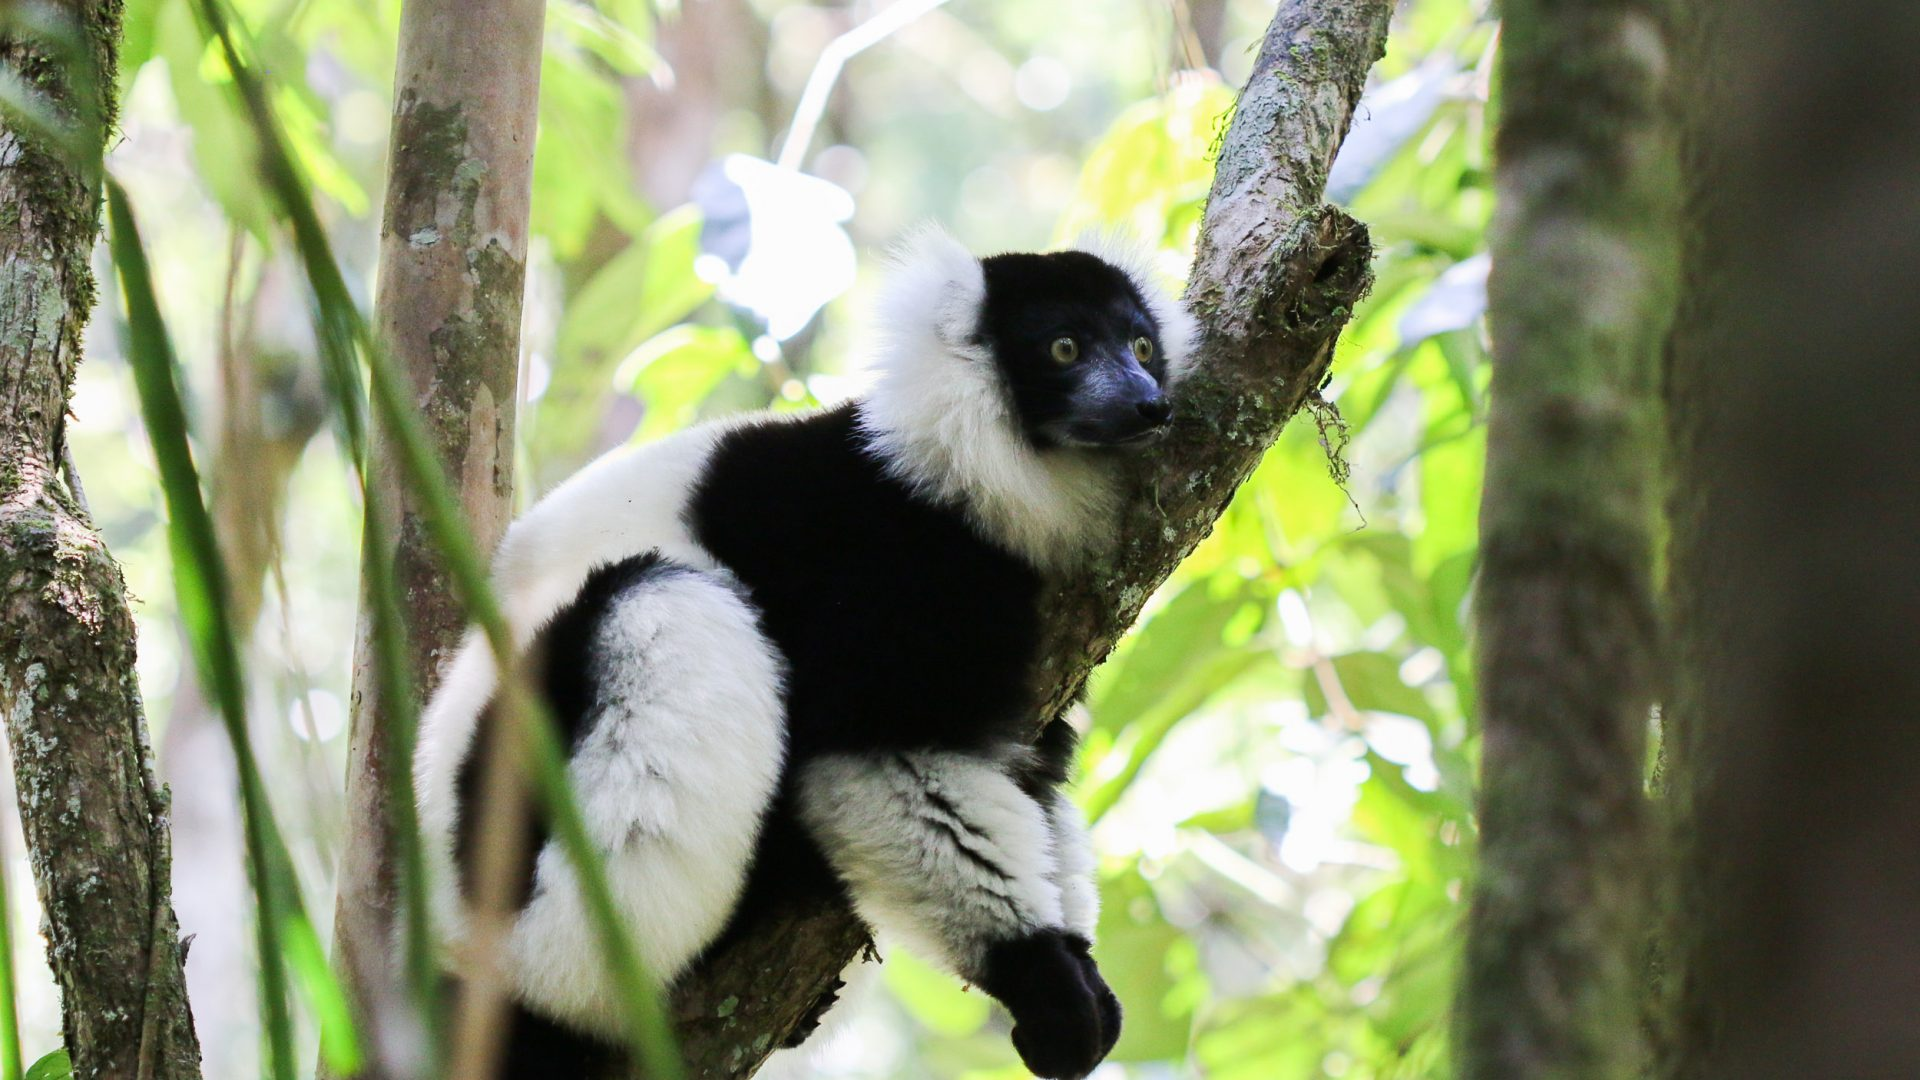 A black-and-white ruffed lemur in Ranomafana National Park.